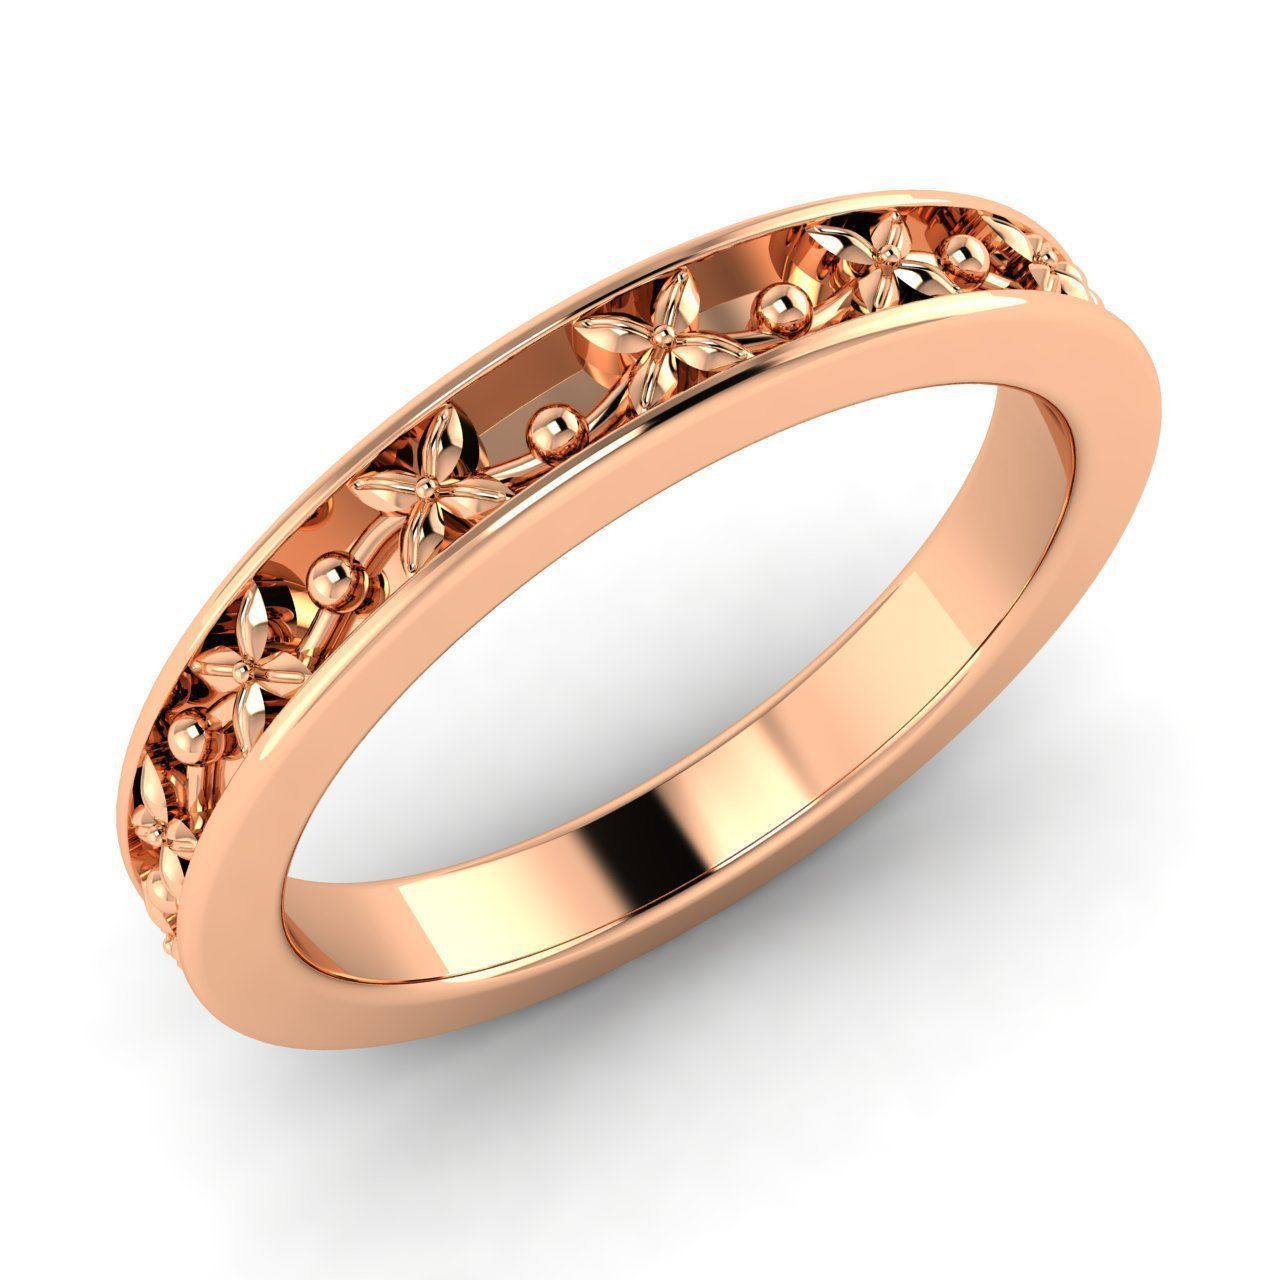 14k Rose Gold Wedding Anniversary Band Ring For Women's Bands Without Stones: Wedding Rings Without Stones At Reisefeber.org